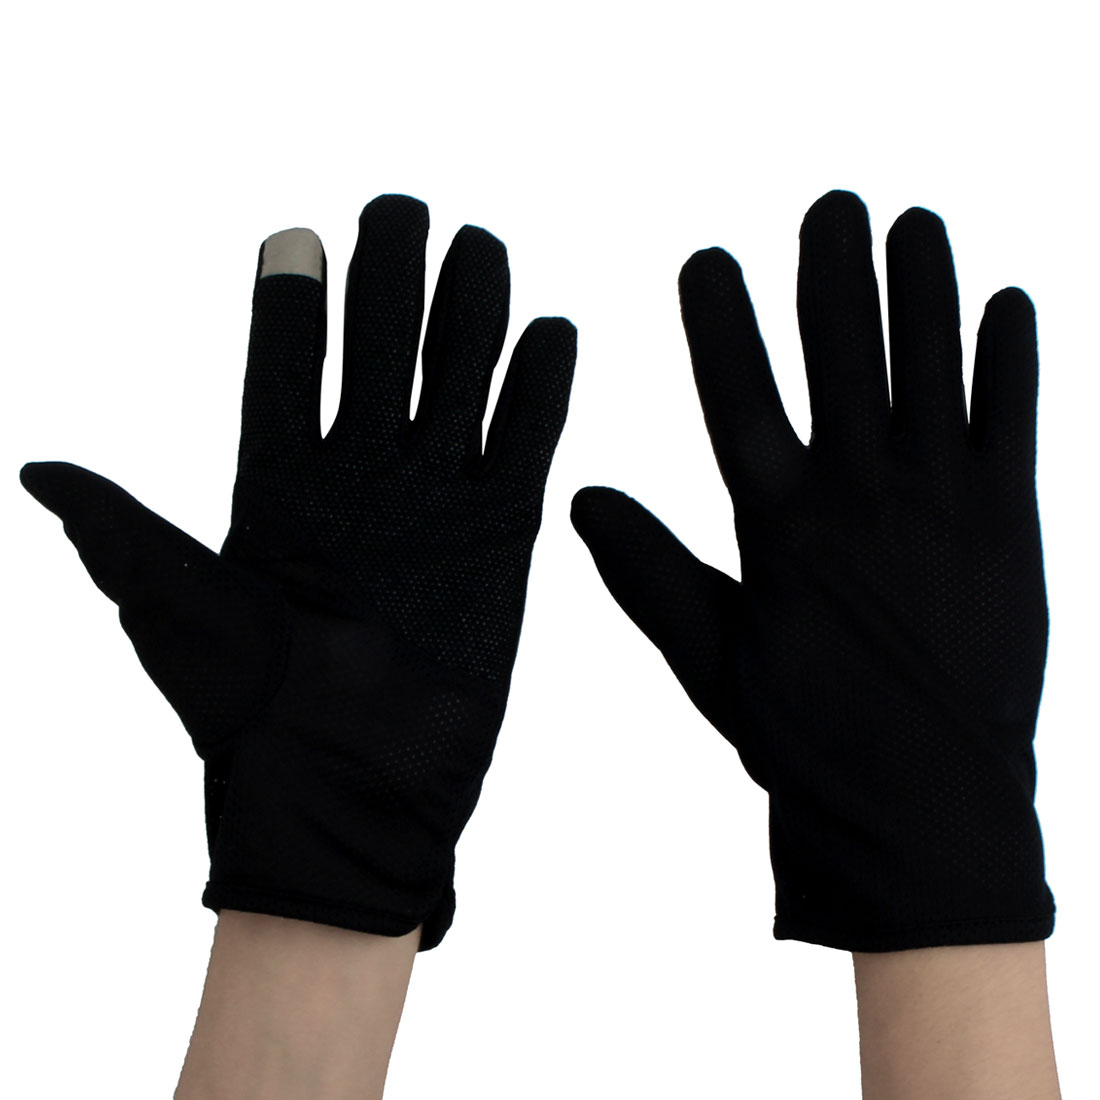 Man Summer Motorcycle Riding Driving Sun Resistant Gloves Protector Black #1